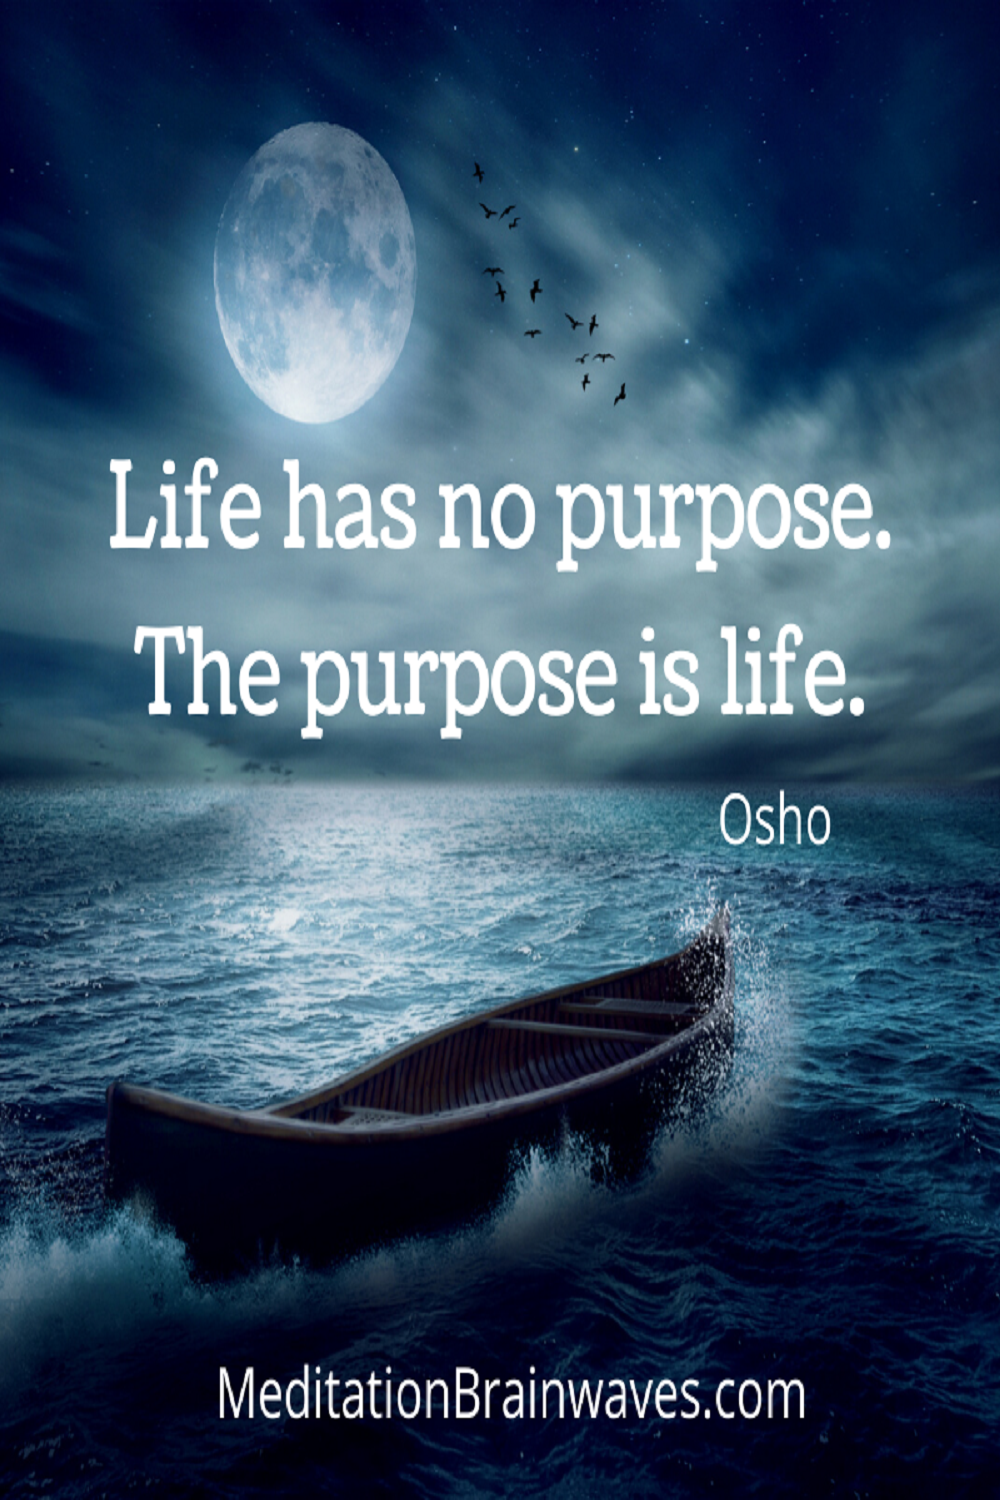 Life has no purpose. The purpose is life.